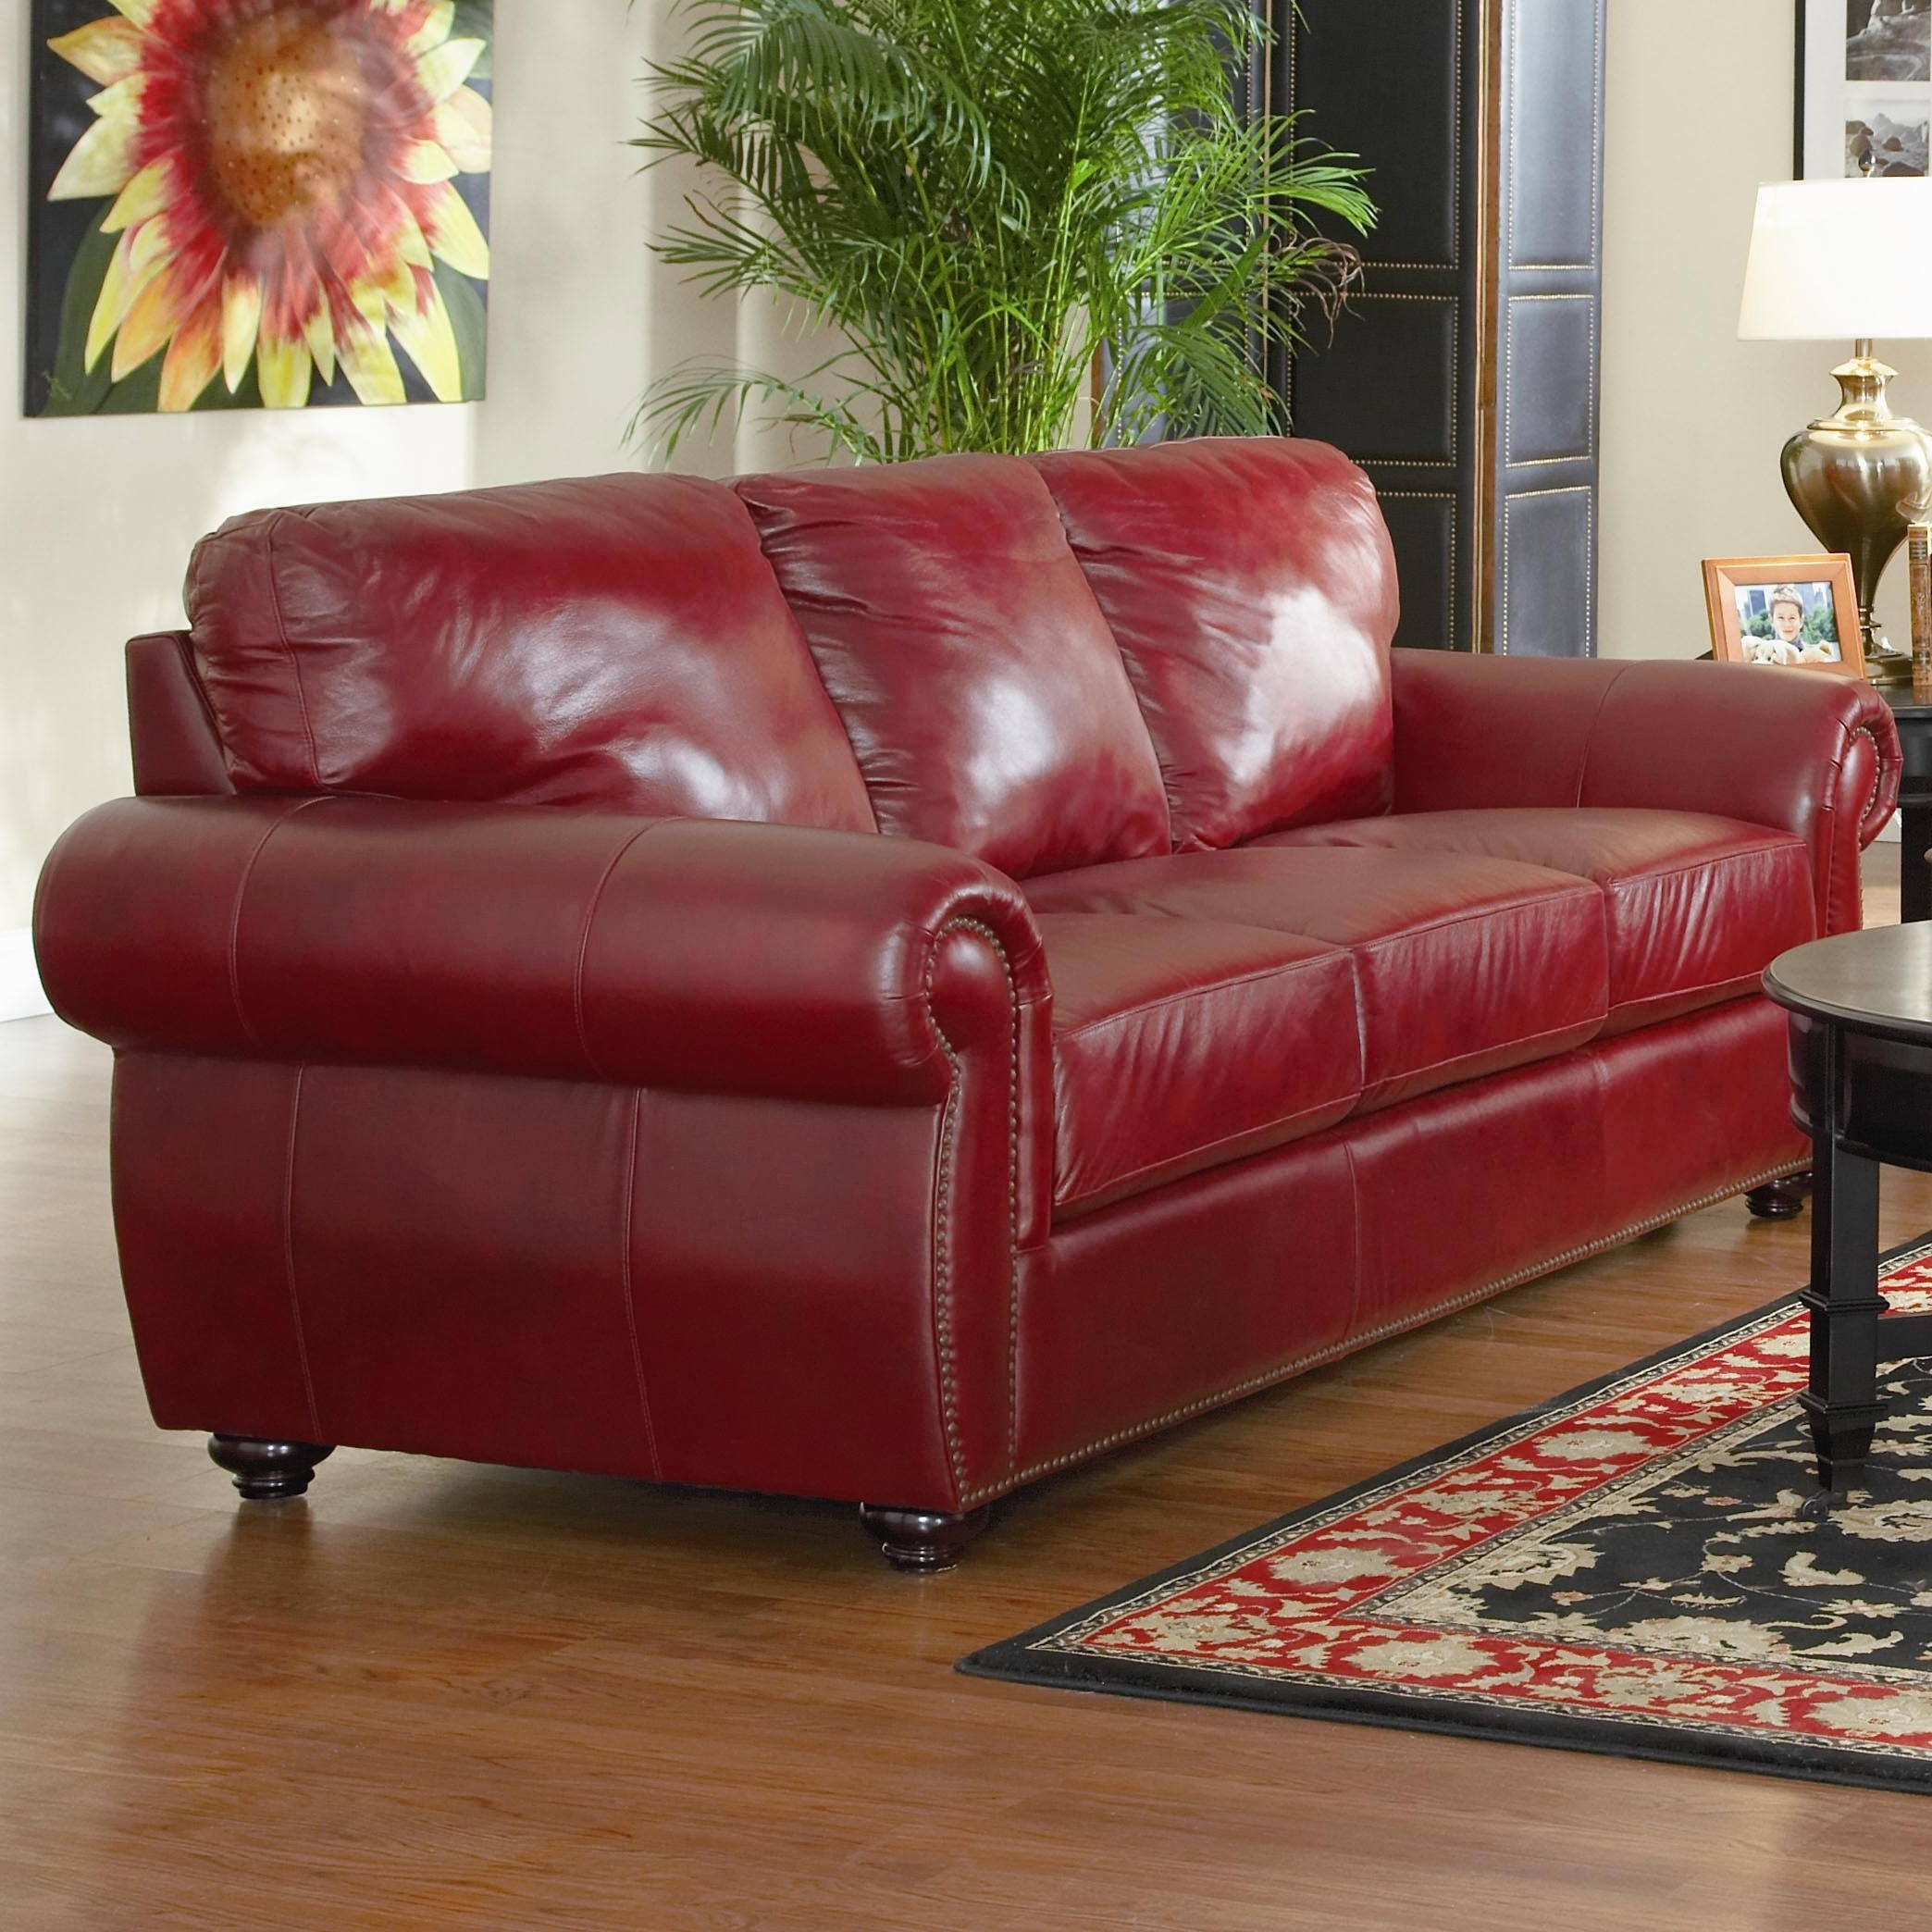 Latest Decorating Burgundy Leather Sofa U2013 Loccie Better Homes Gardens Ideas  For Red Leather Couches And